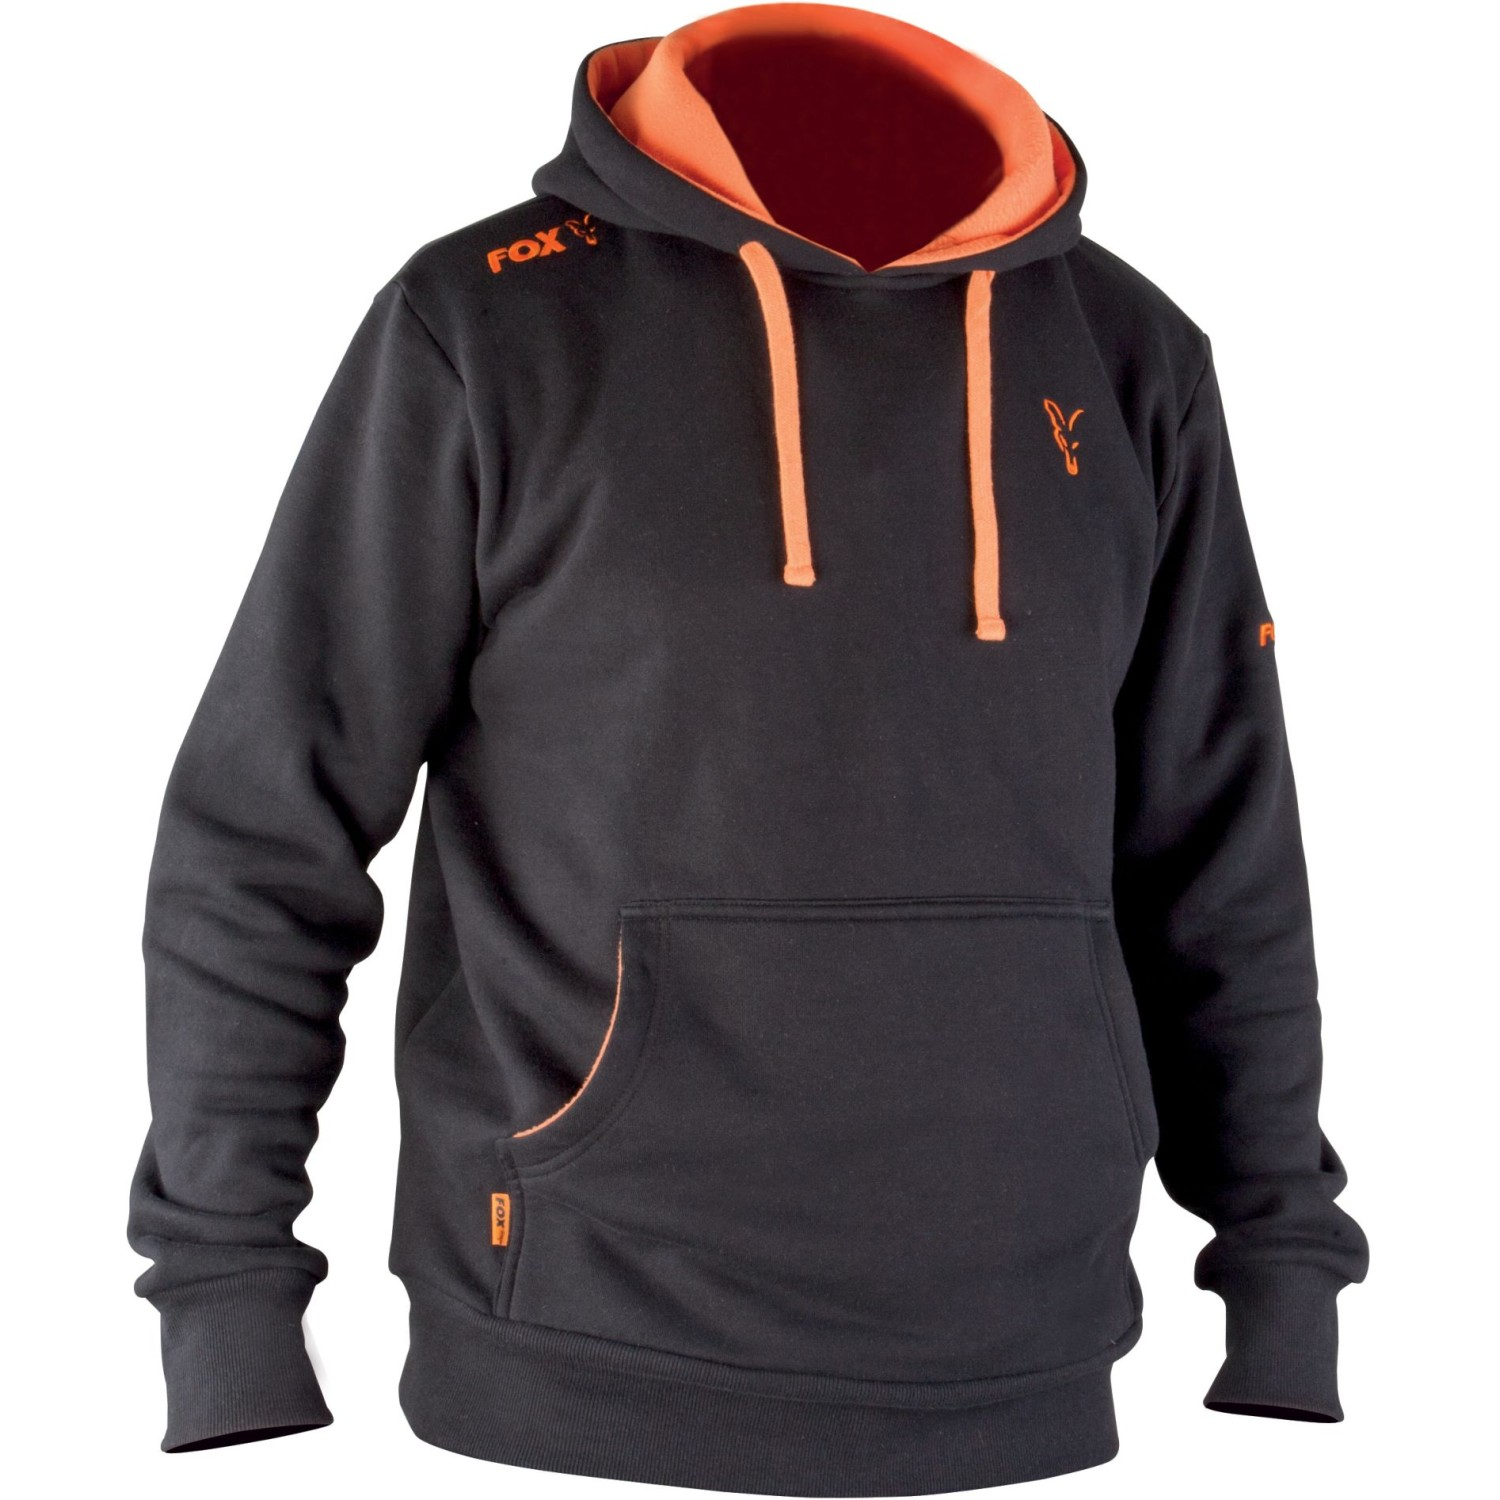 FOX Hoodie black-orange